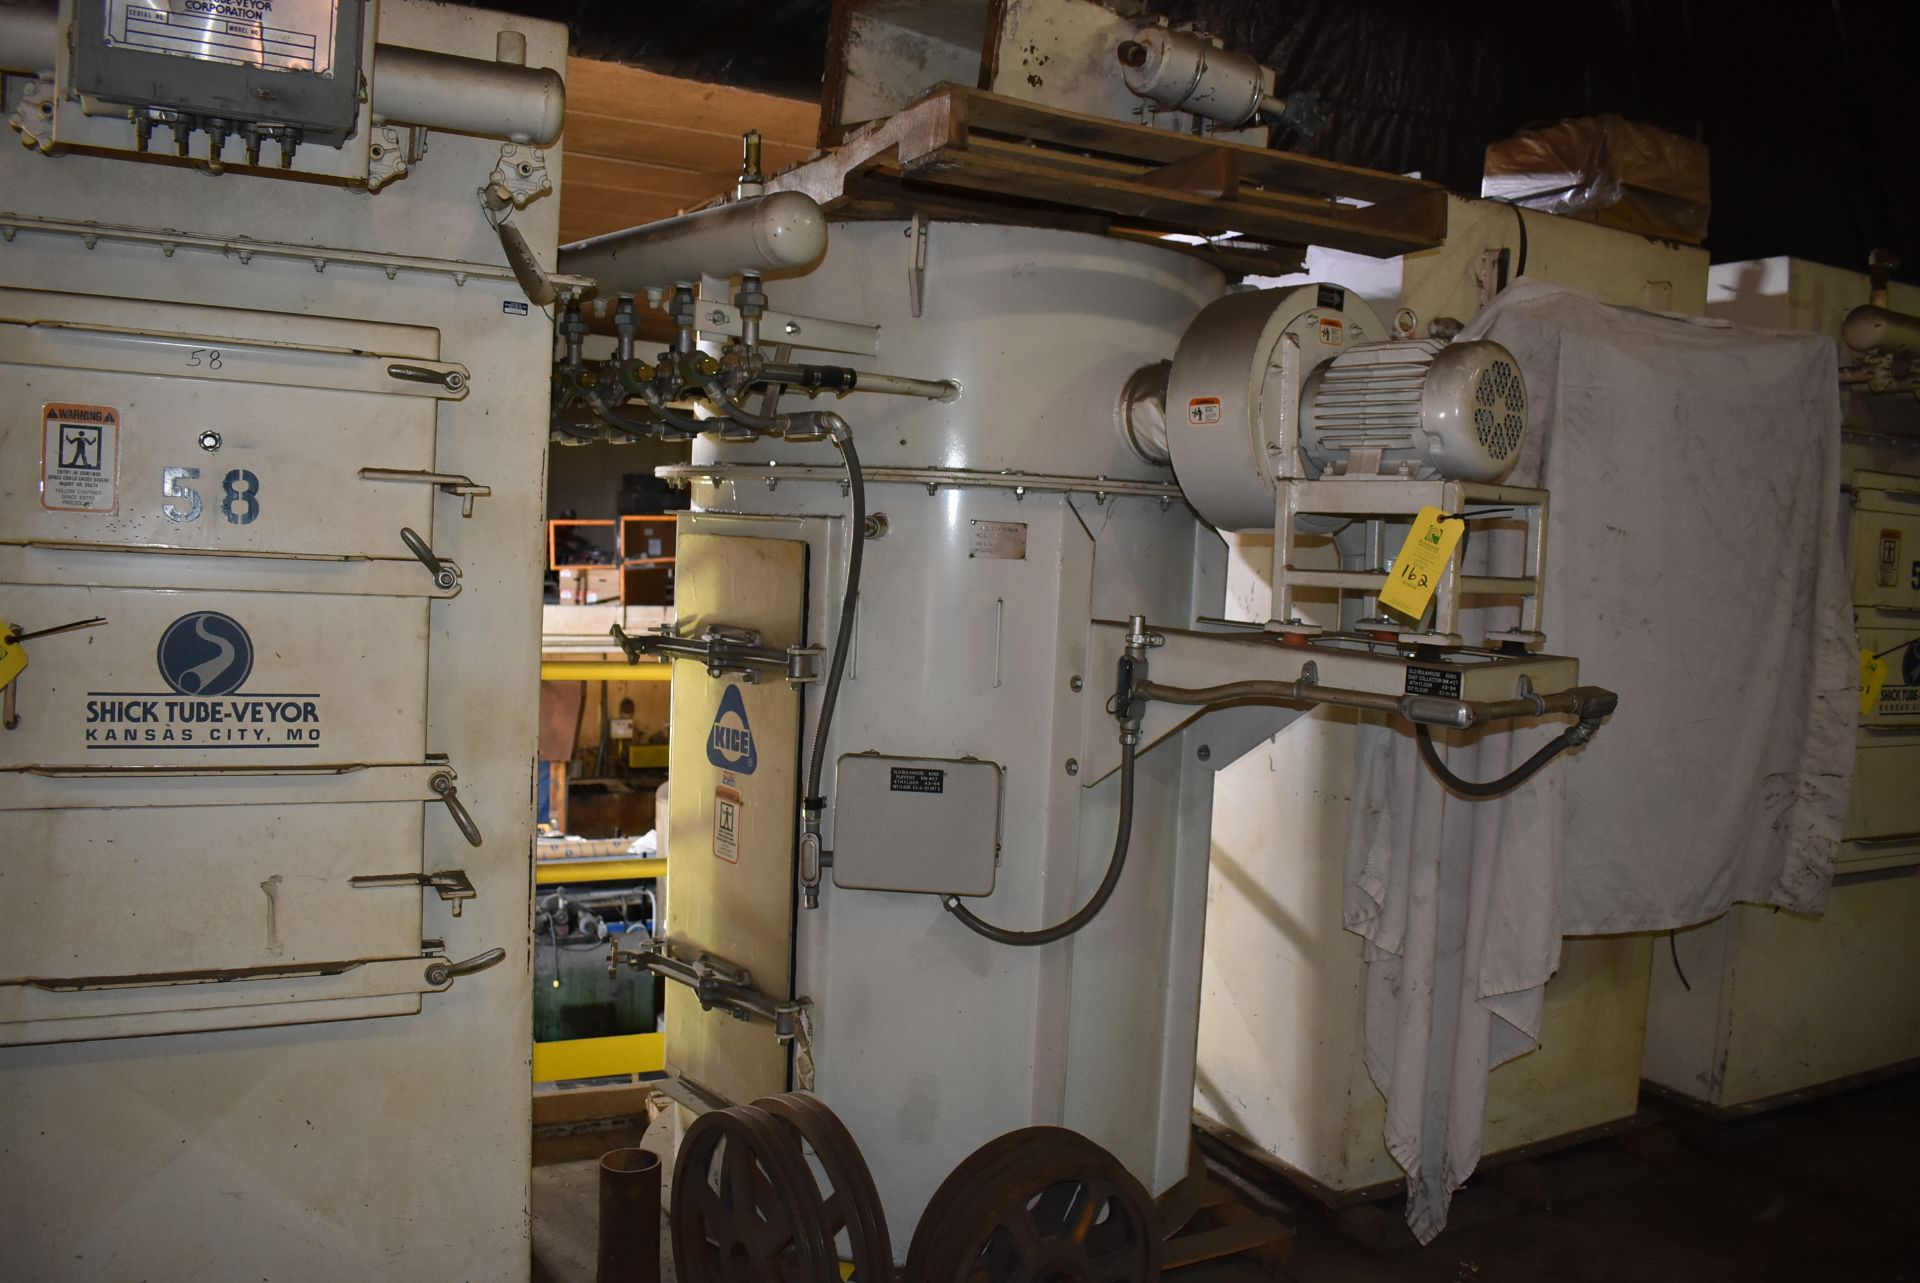 Kice Model #VR-214BINVENT Dust Collection System